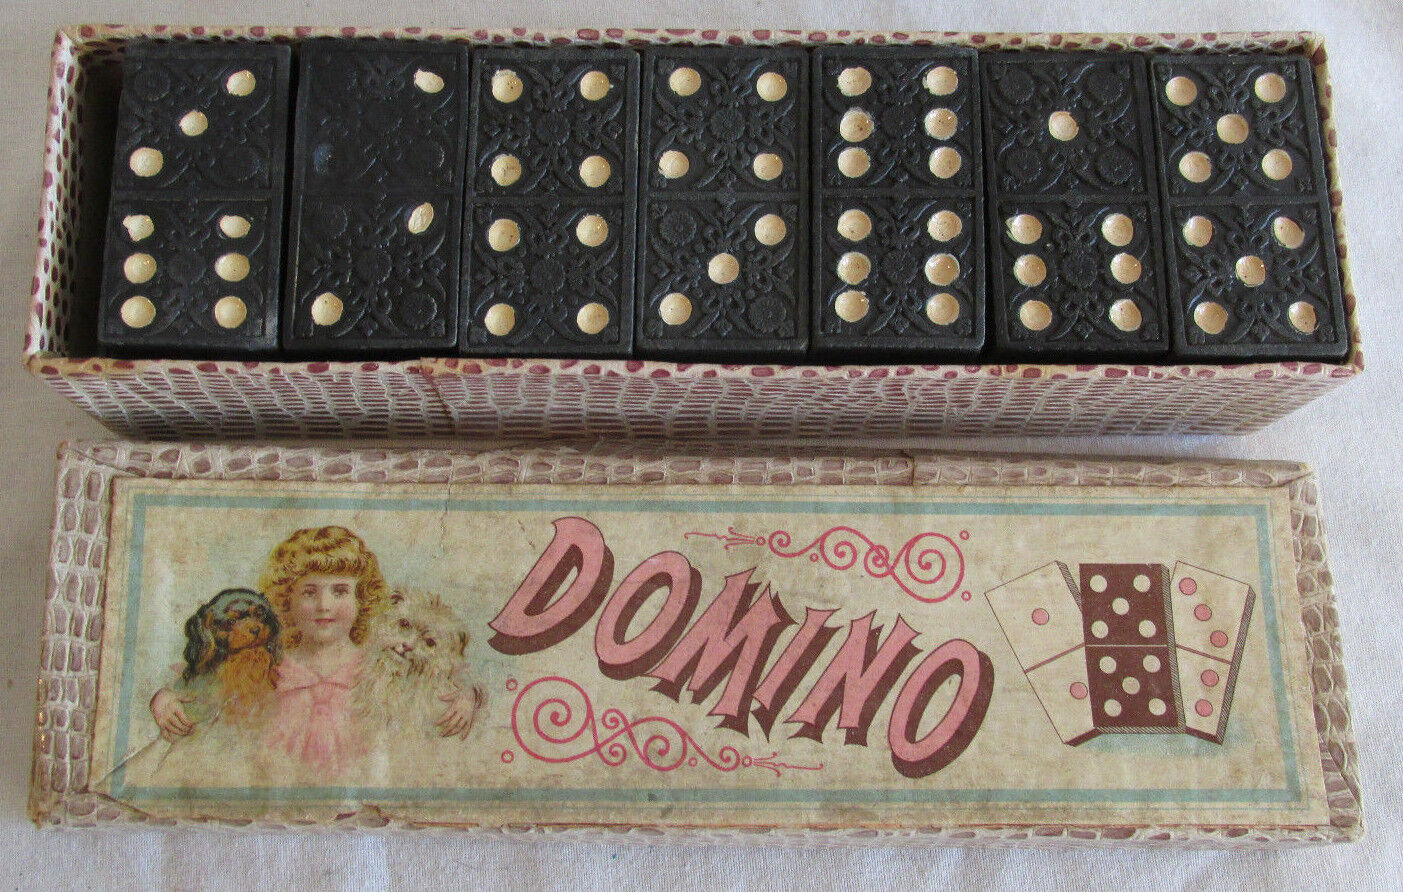 Victorian Era Domino's w Original Box Germany 28 Piece RARE Antique Game Nice